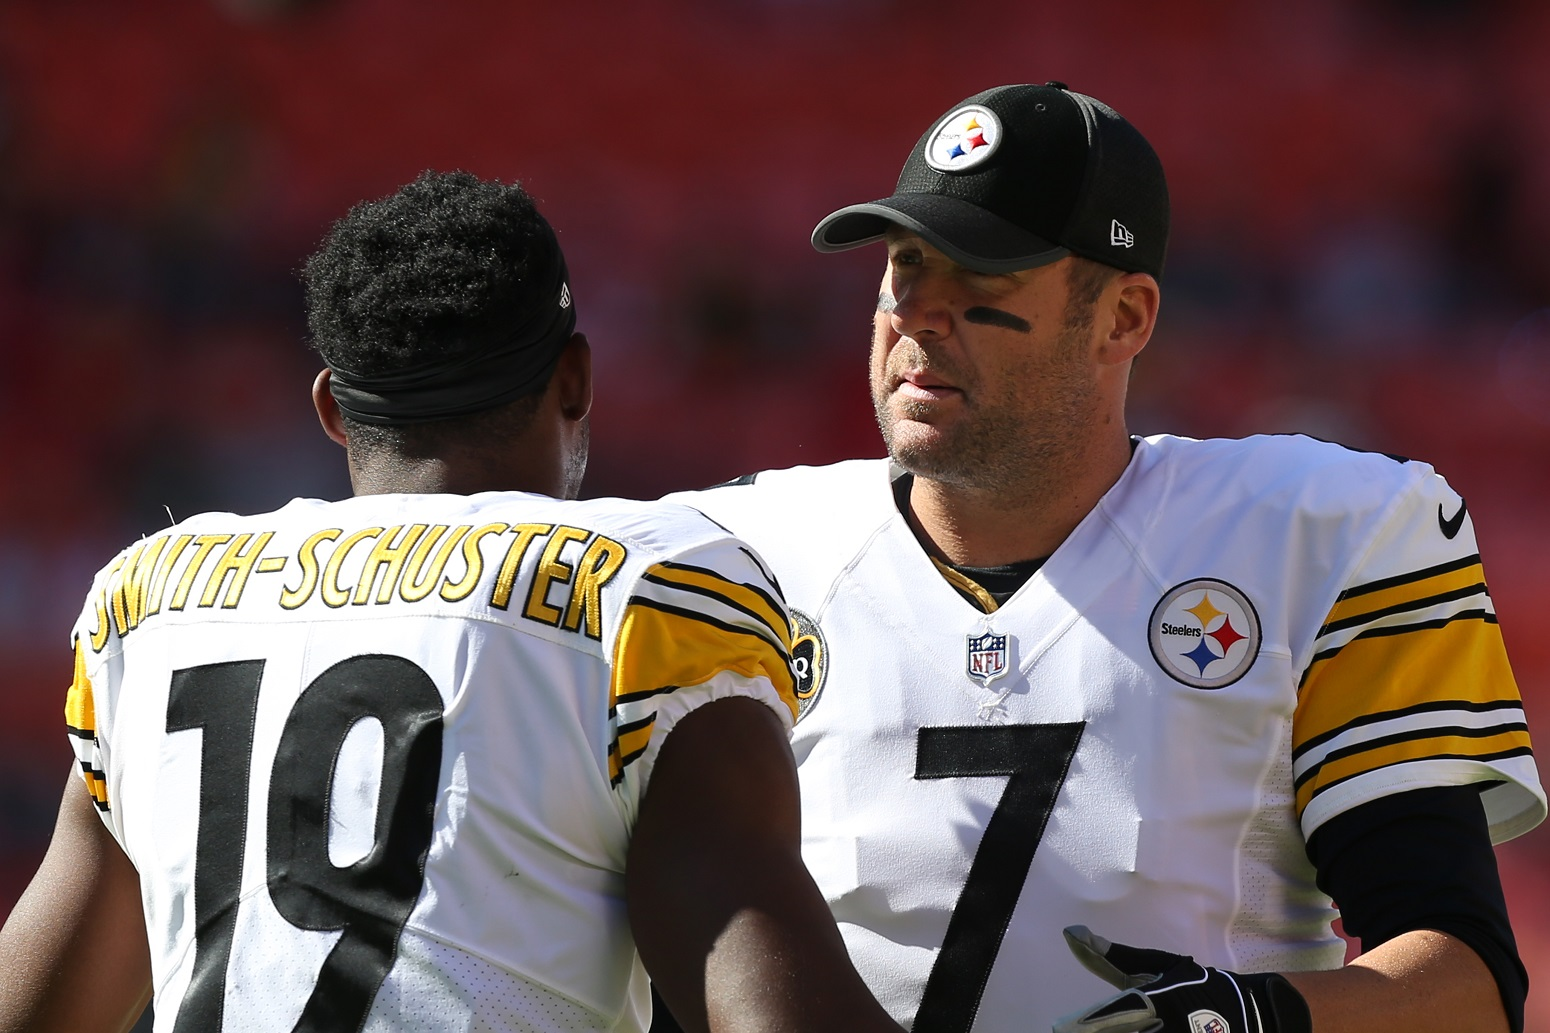 Ben Roethlisberger JuJu Smith-Schuster